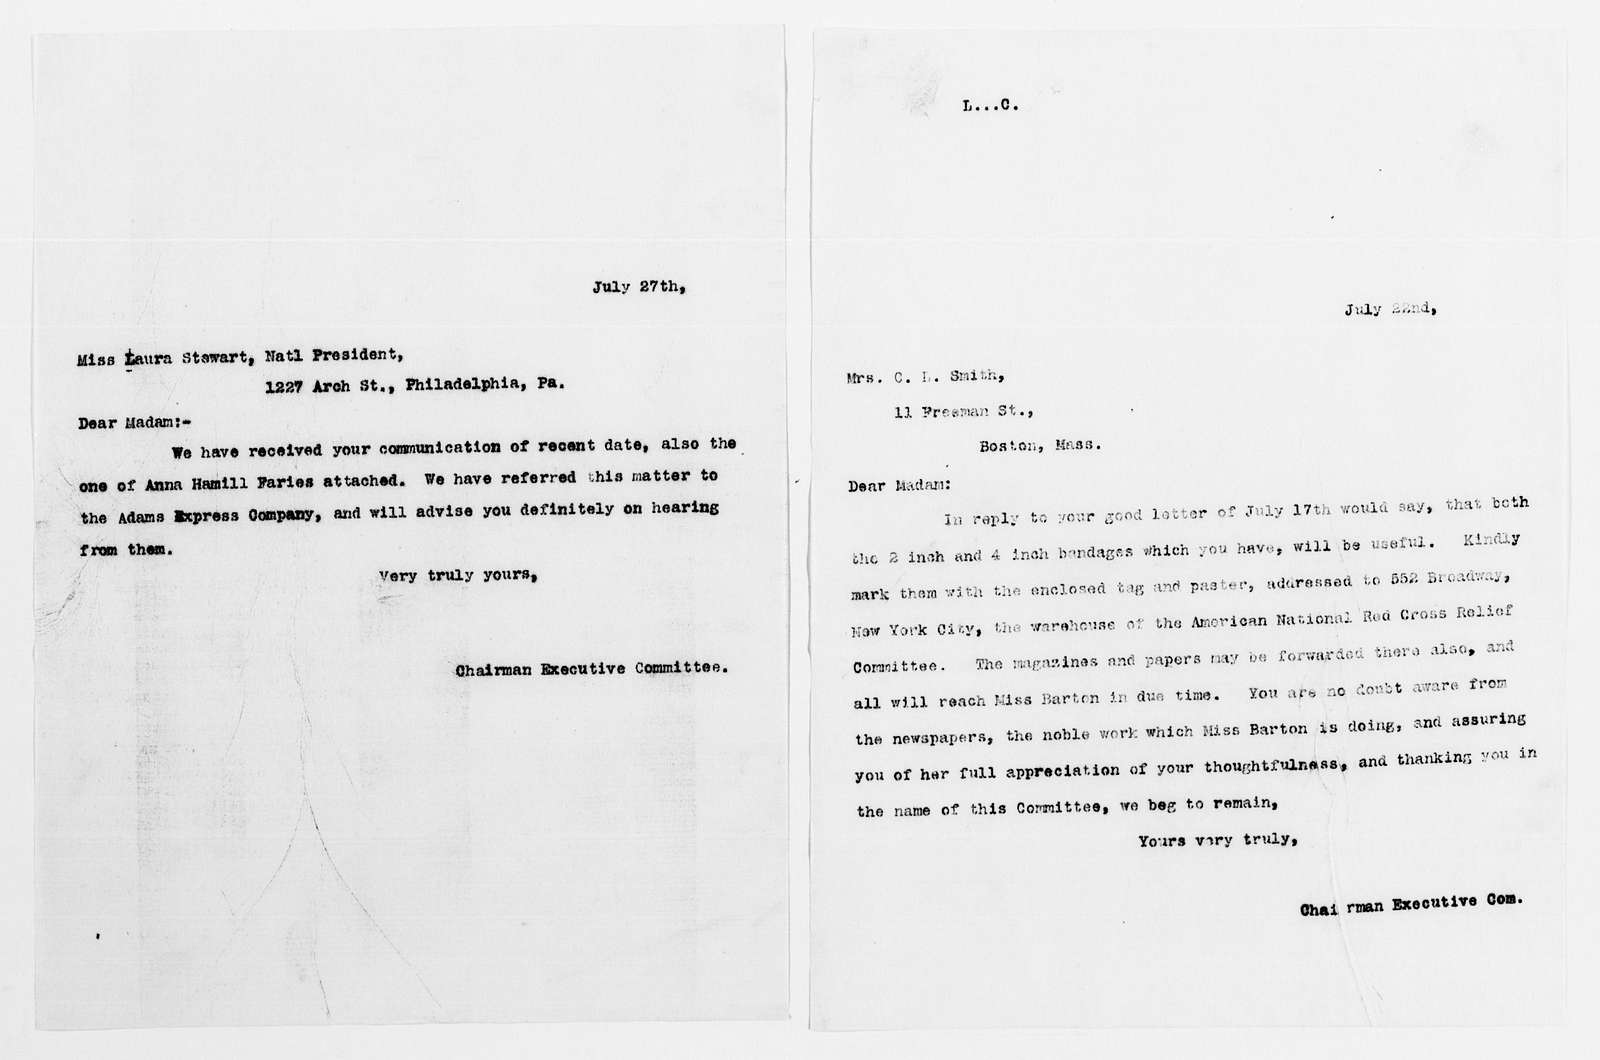 Clara Barton Papers: Red Cross File, 1863-1957; American National Red Cross, 1878-1957; Relief operations; Spanish-American War; Contributions and donations; Materials and supplies; 1898, July-1899, May